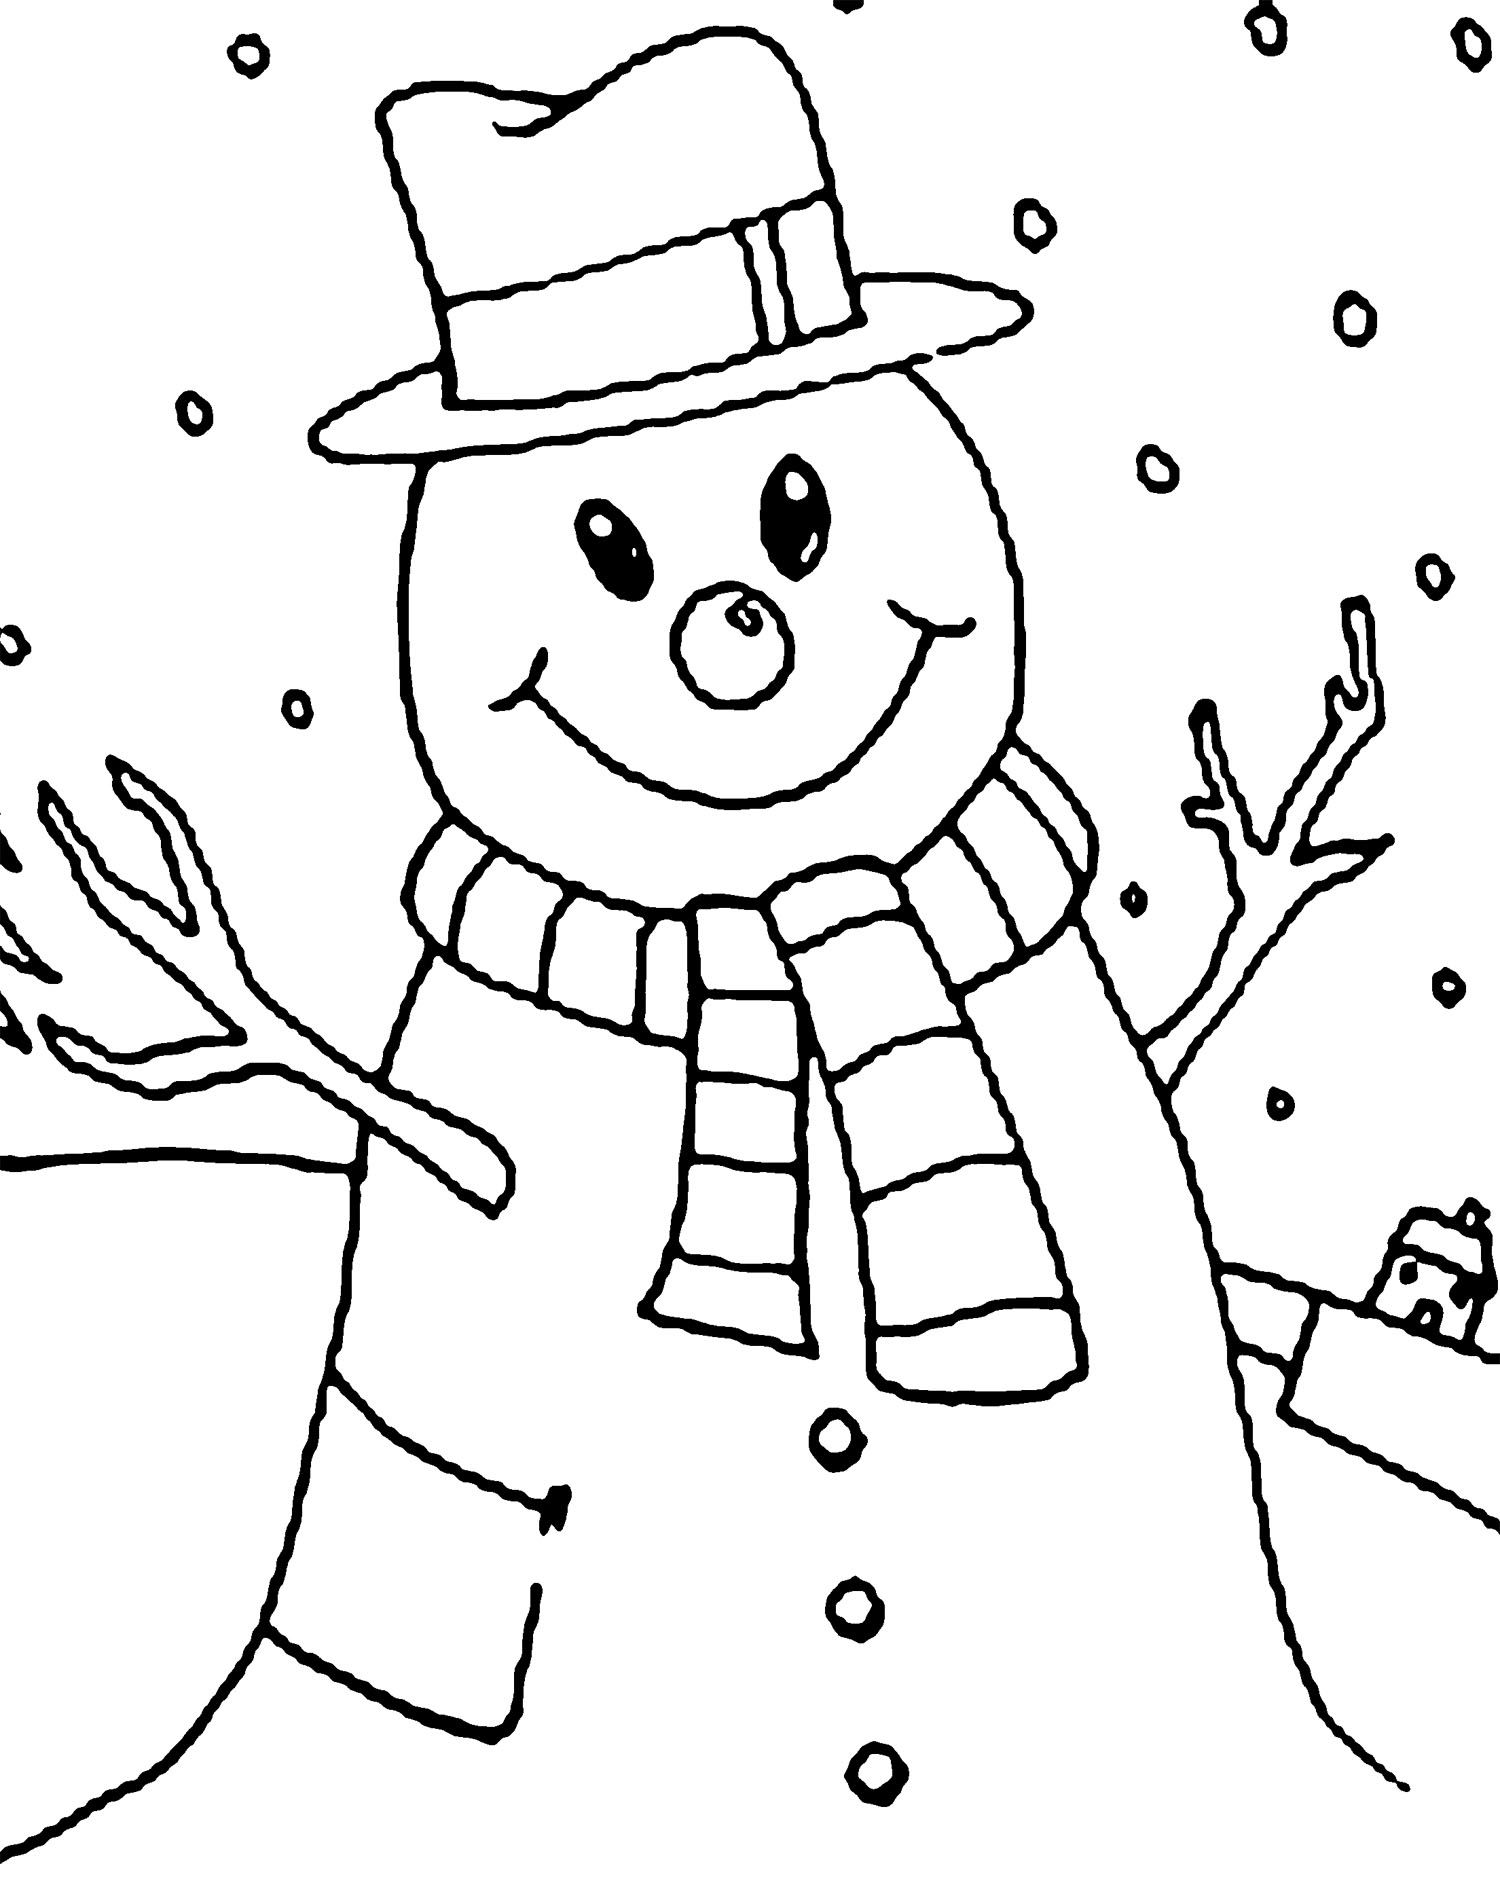 Winter Snowman Coloring Page | Winter | Pinterest